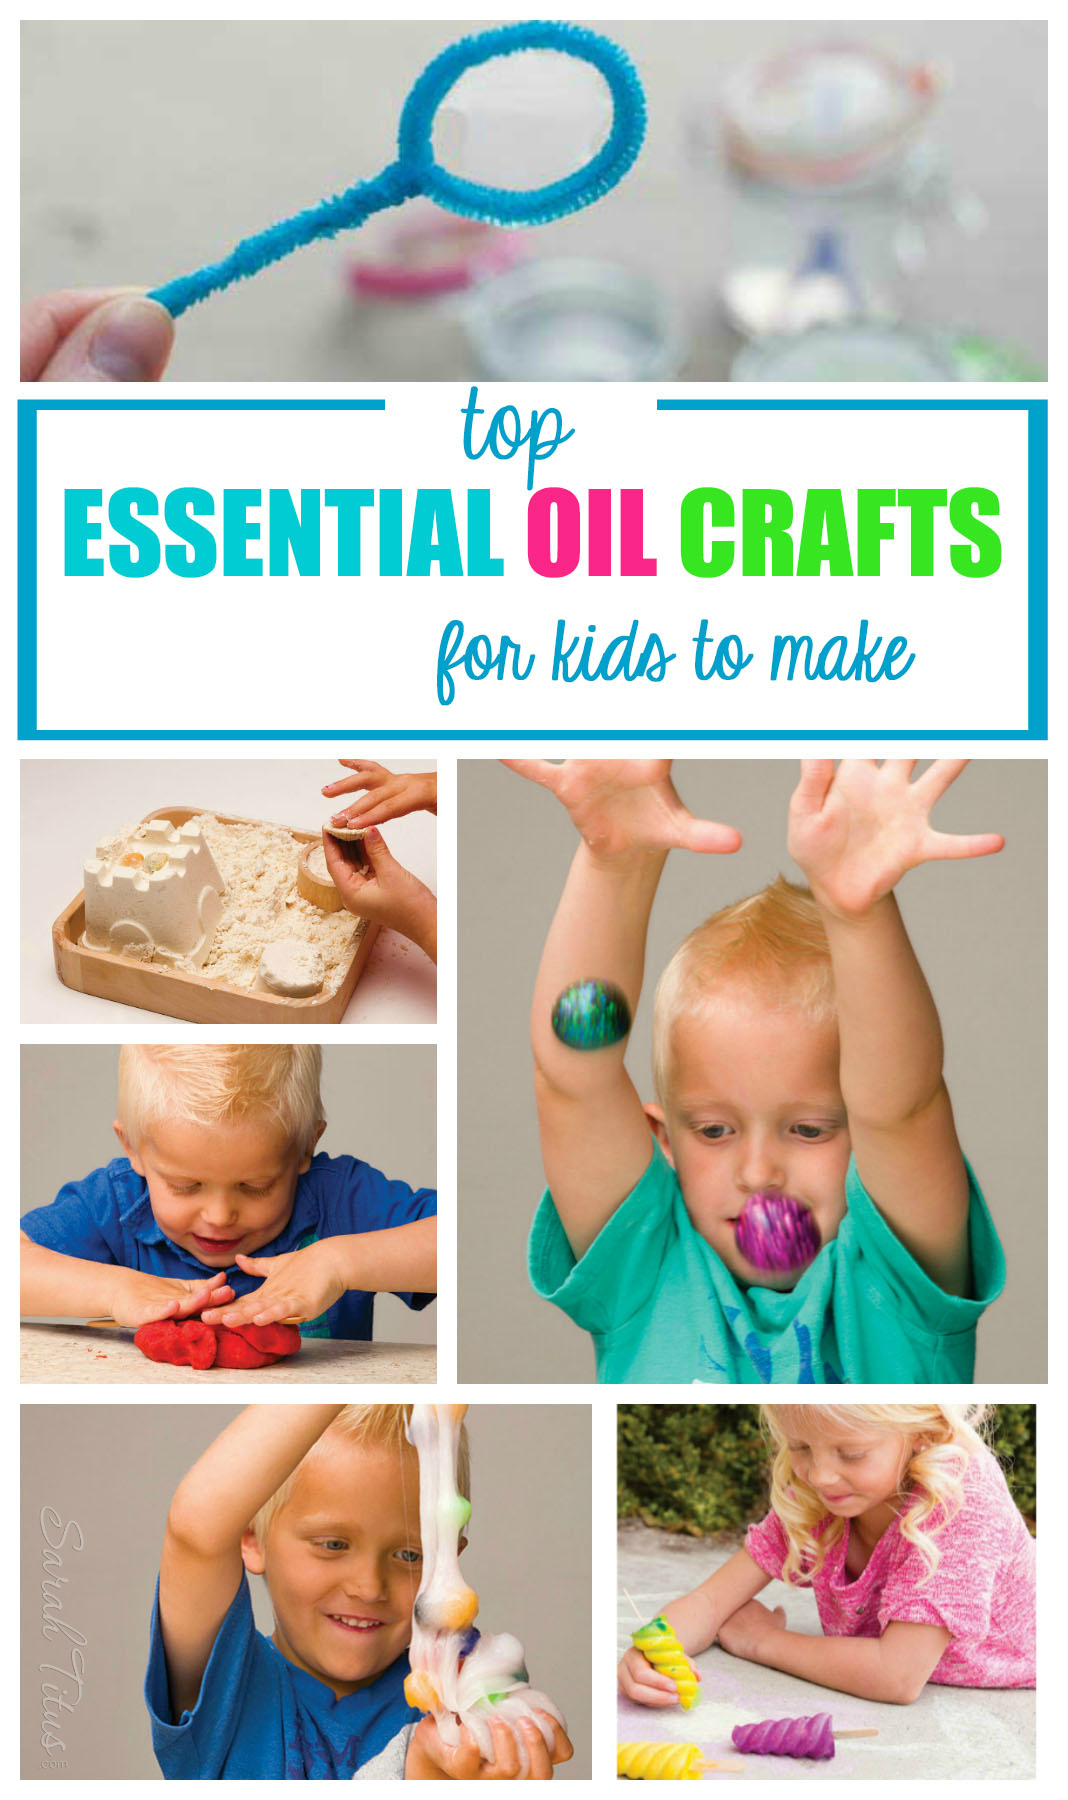 Top Essential Oil Crafts for Kids to Make: Chalksicles, bouncy balls, polka dot slime, bubbles, playdough, flubber, moon sand, kids paints.